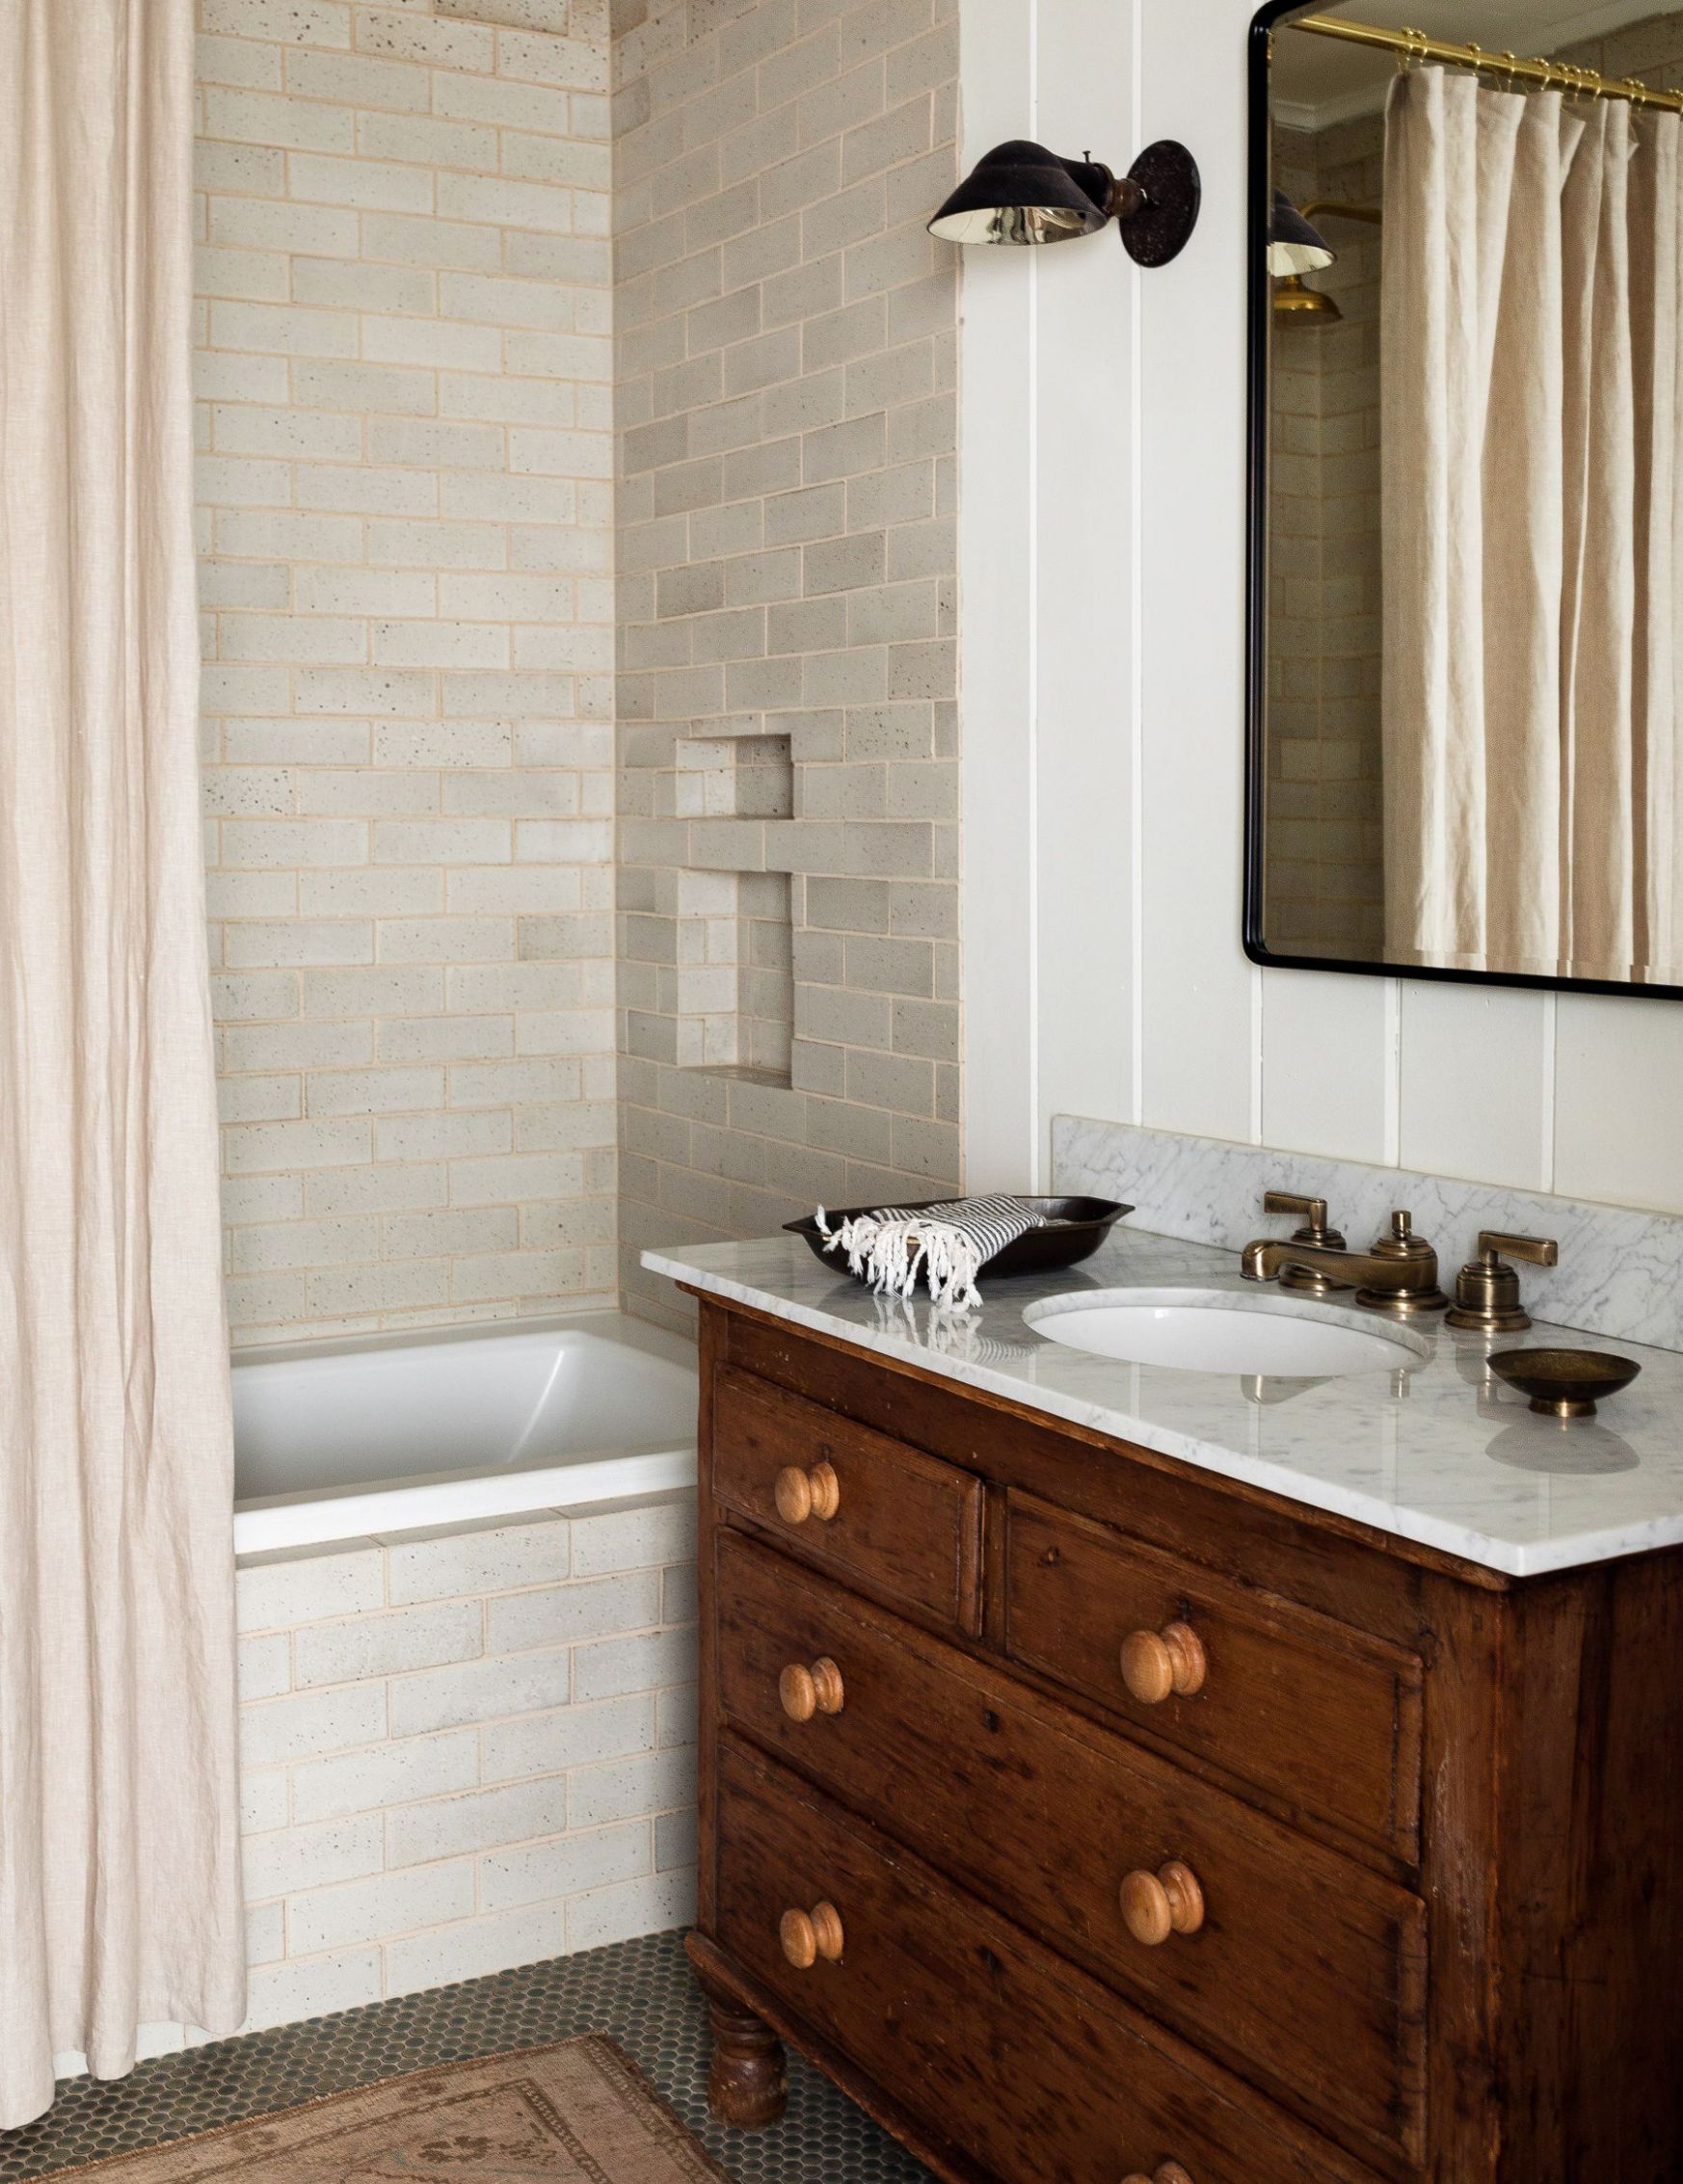 9 Best Subway Tile Bathroom Designs in 9 - Subway Tile Ideas ...